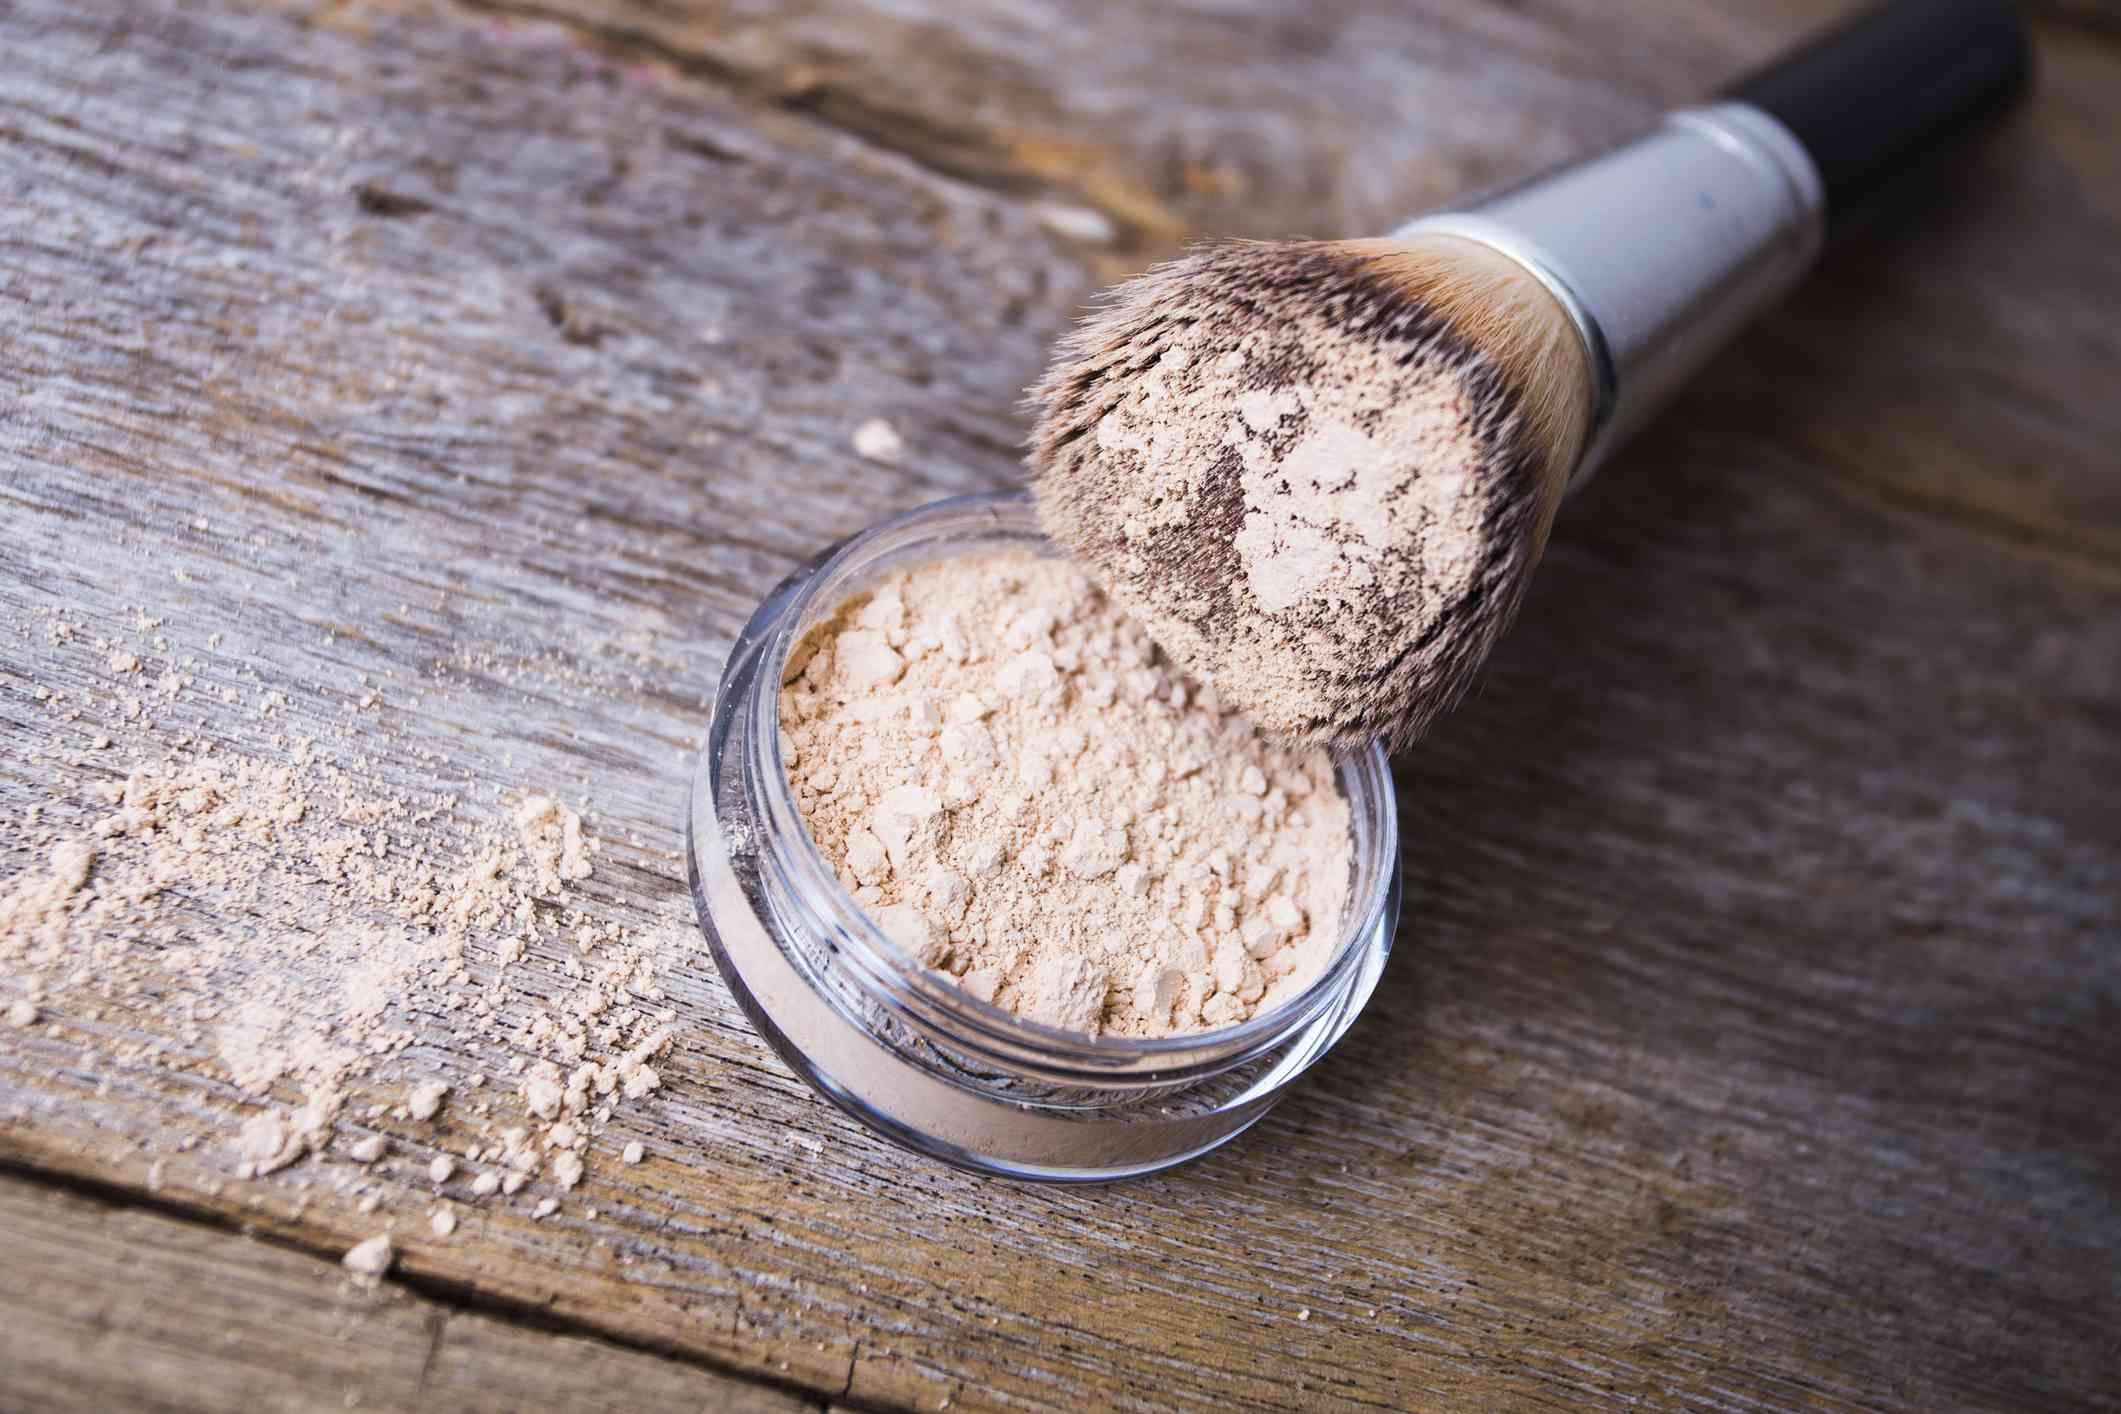 Loose powder on a rustic wood table with brush.